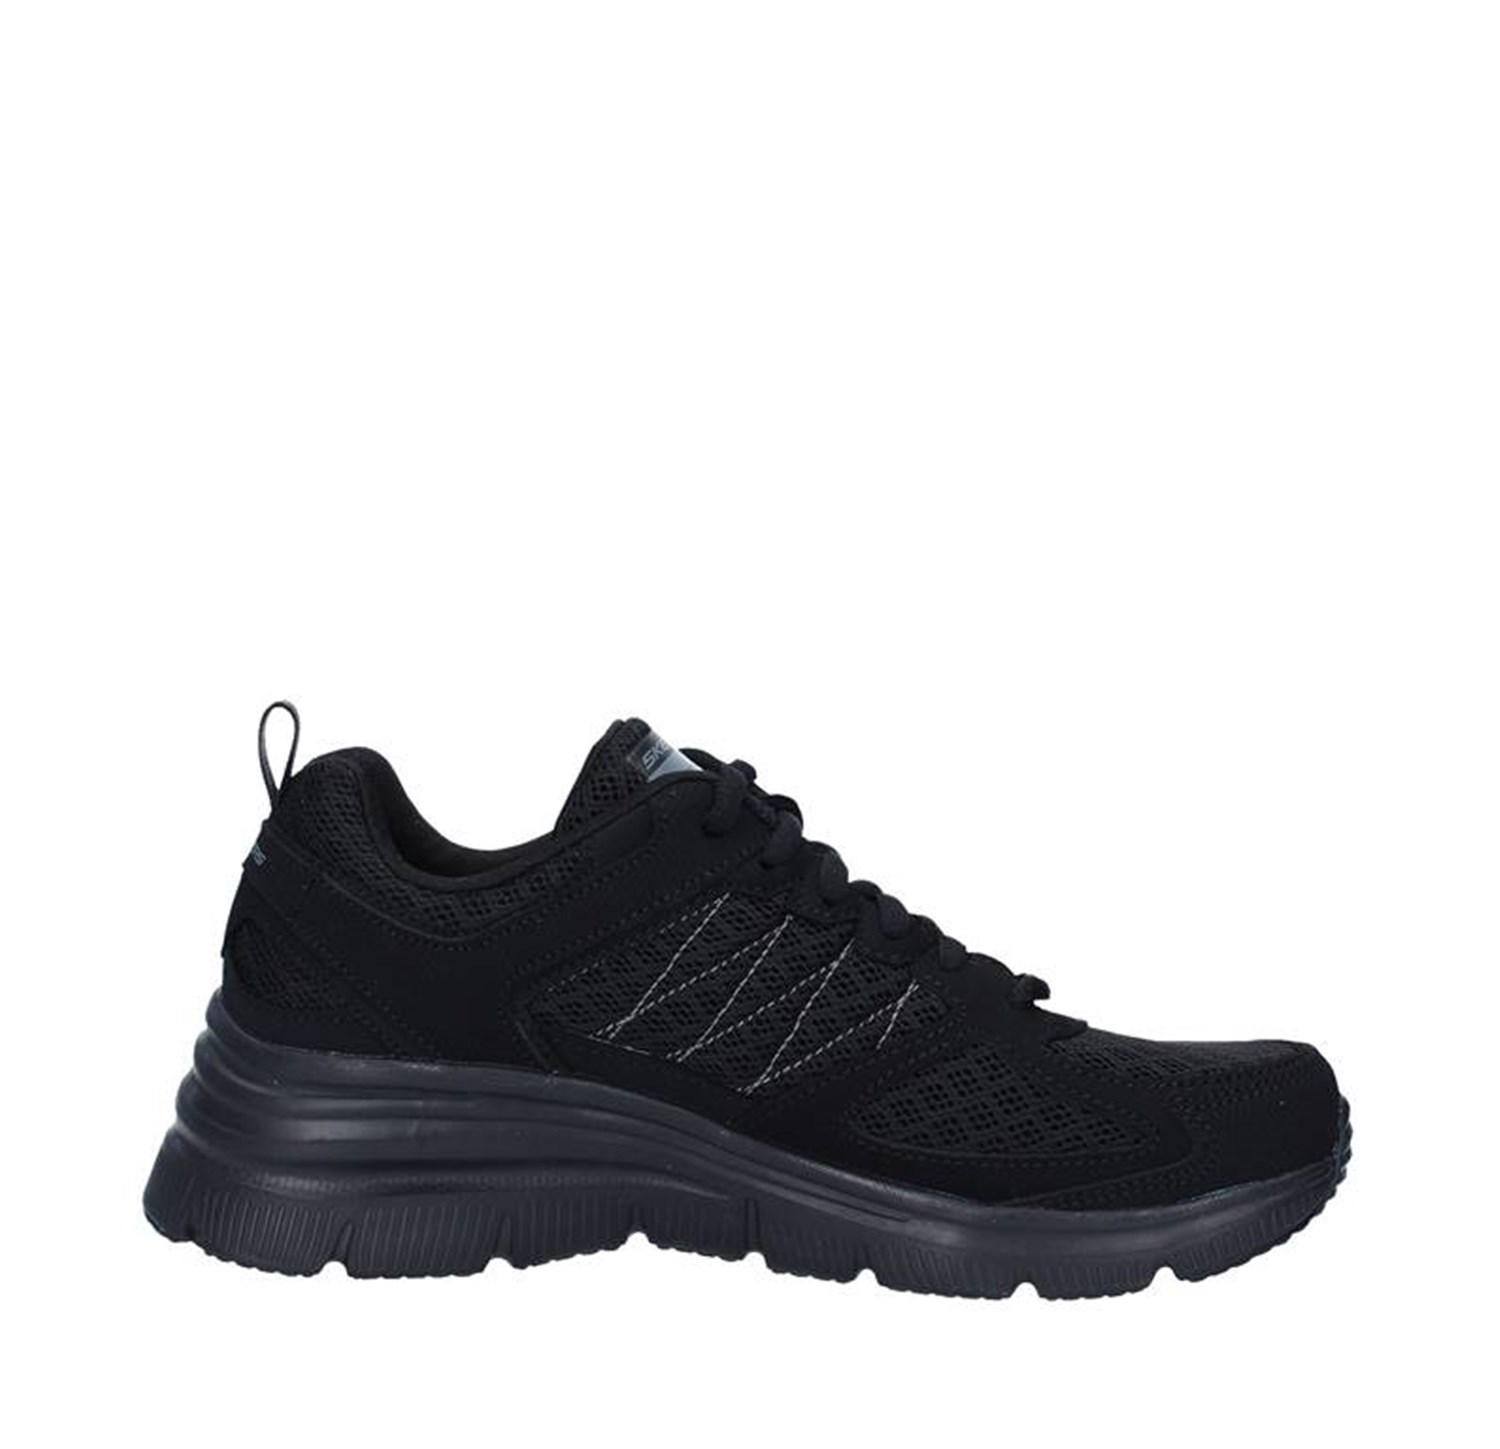 Skechers Shoes Woman Sneakers BLACK 12713